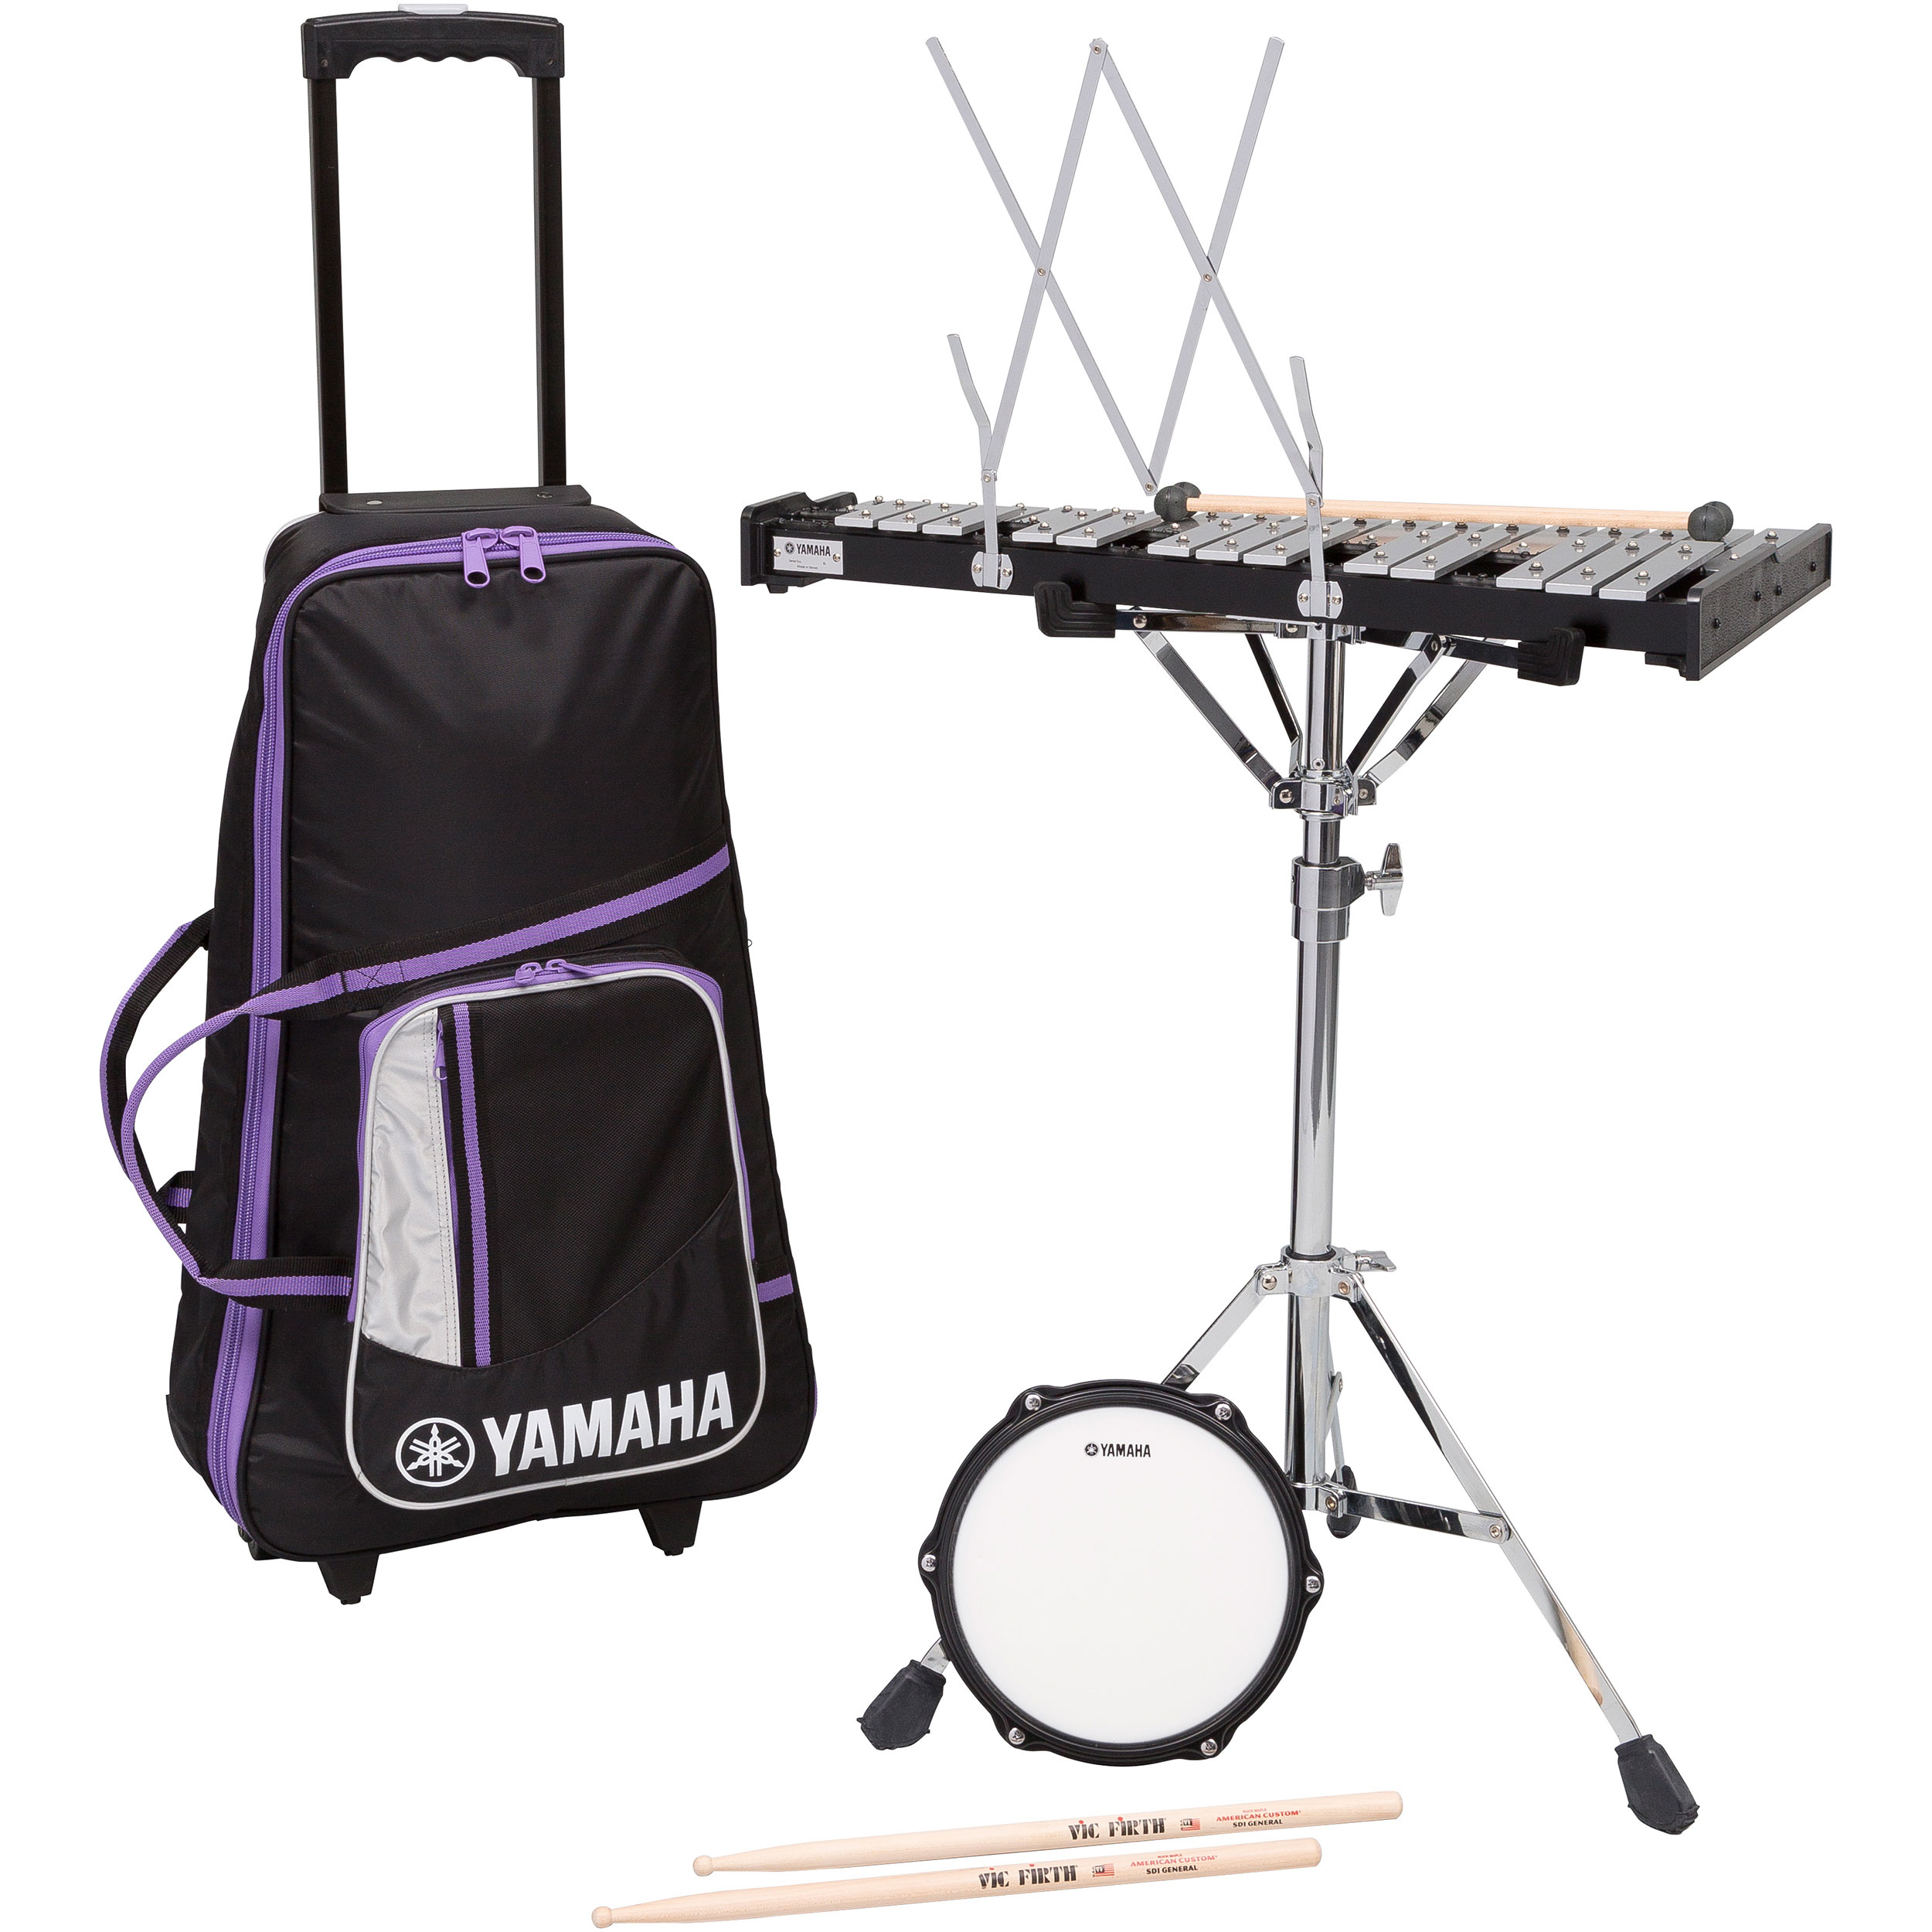 Yamaha  Total Percussion Bell Kit with Rolling Cart